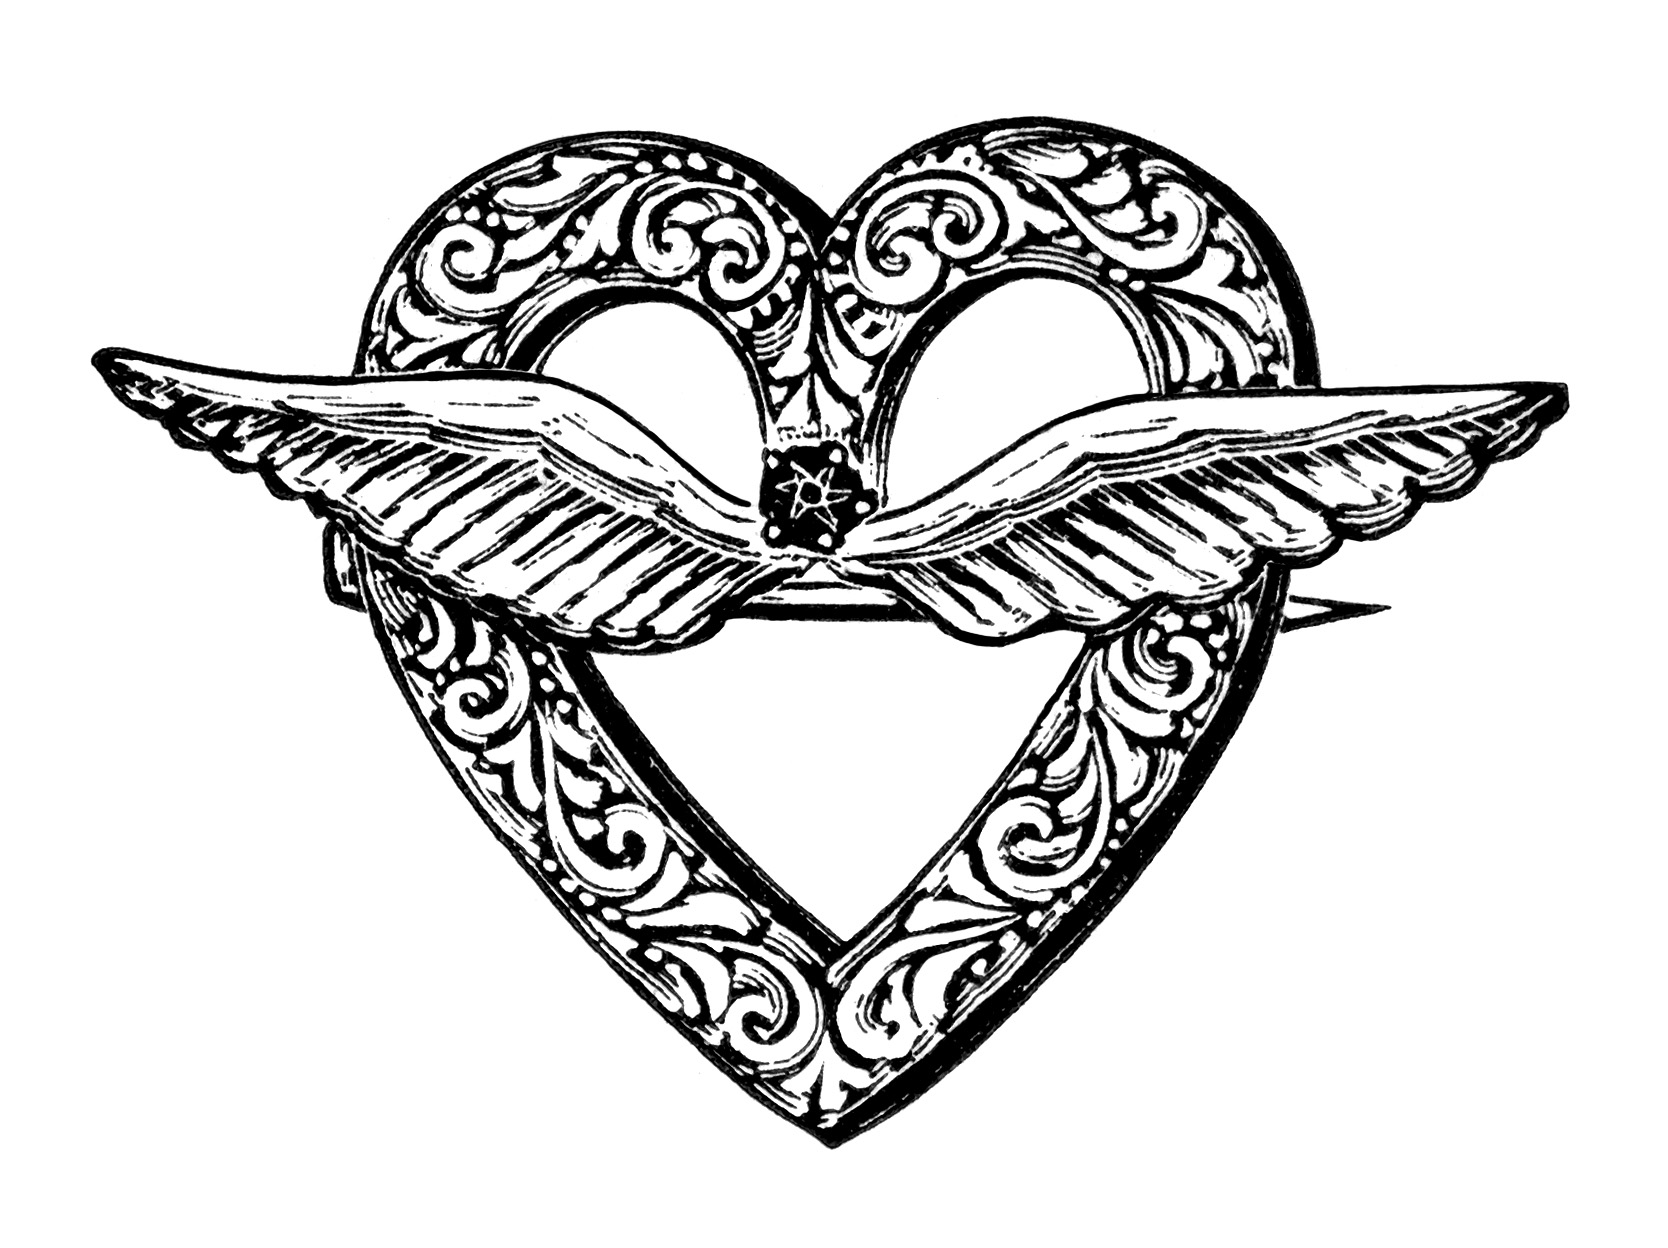 Free Vintage Image Heart Shaped Brooch With Wings